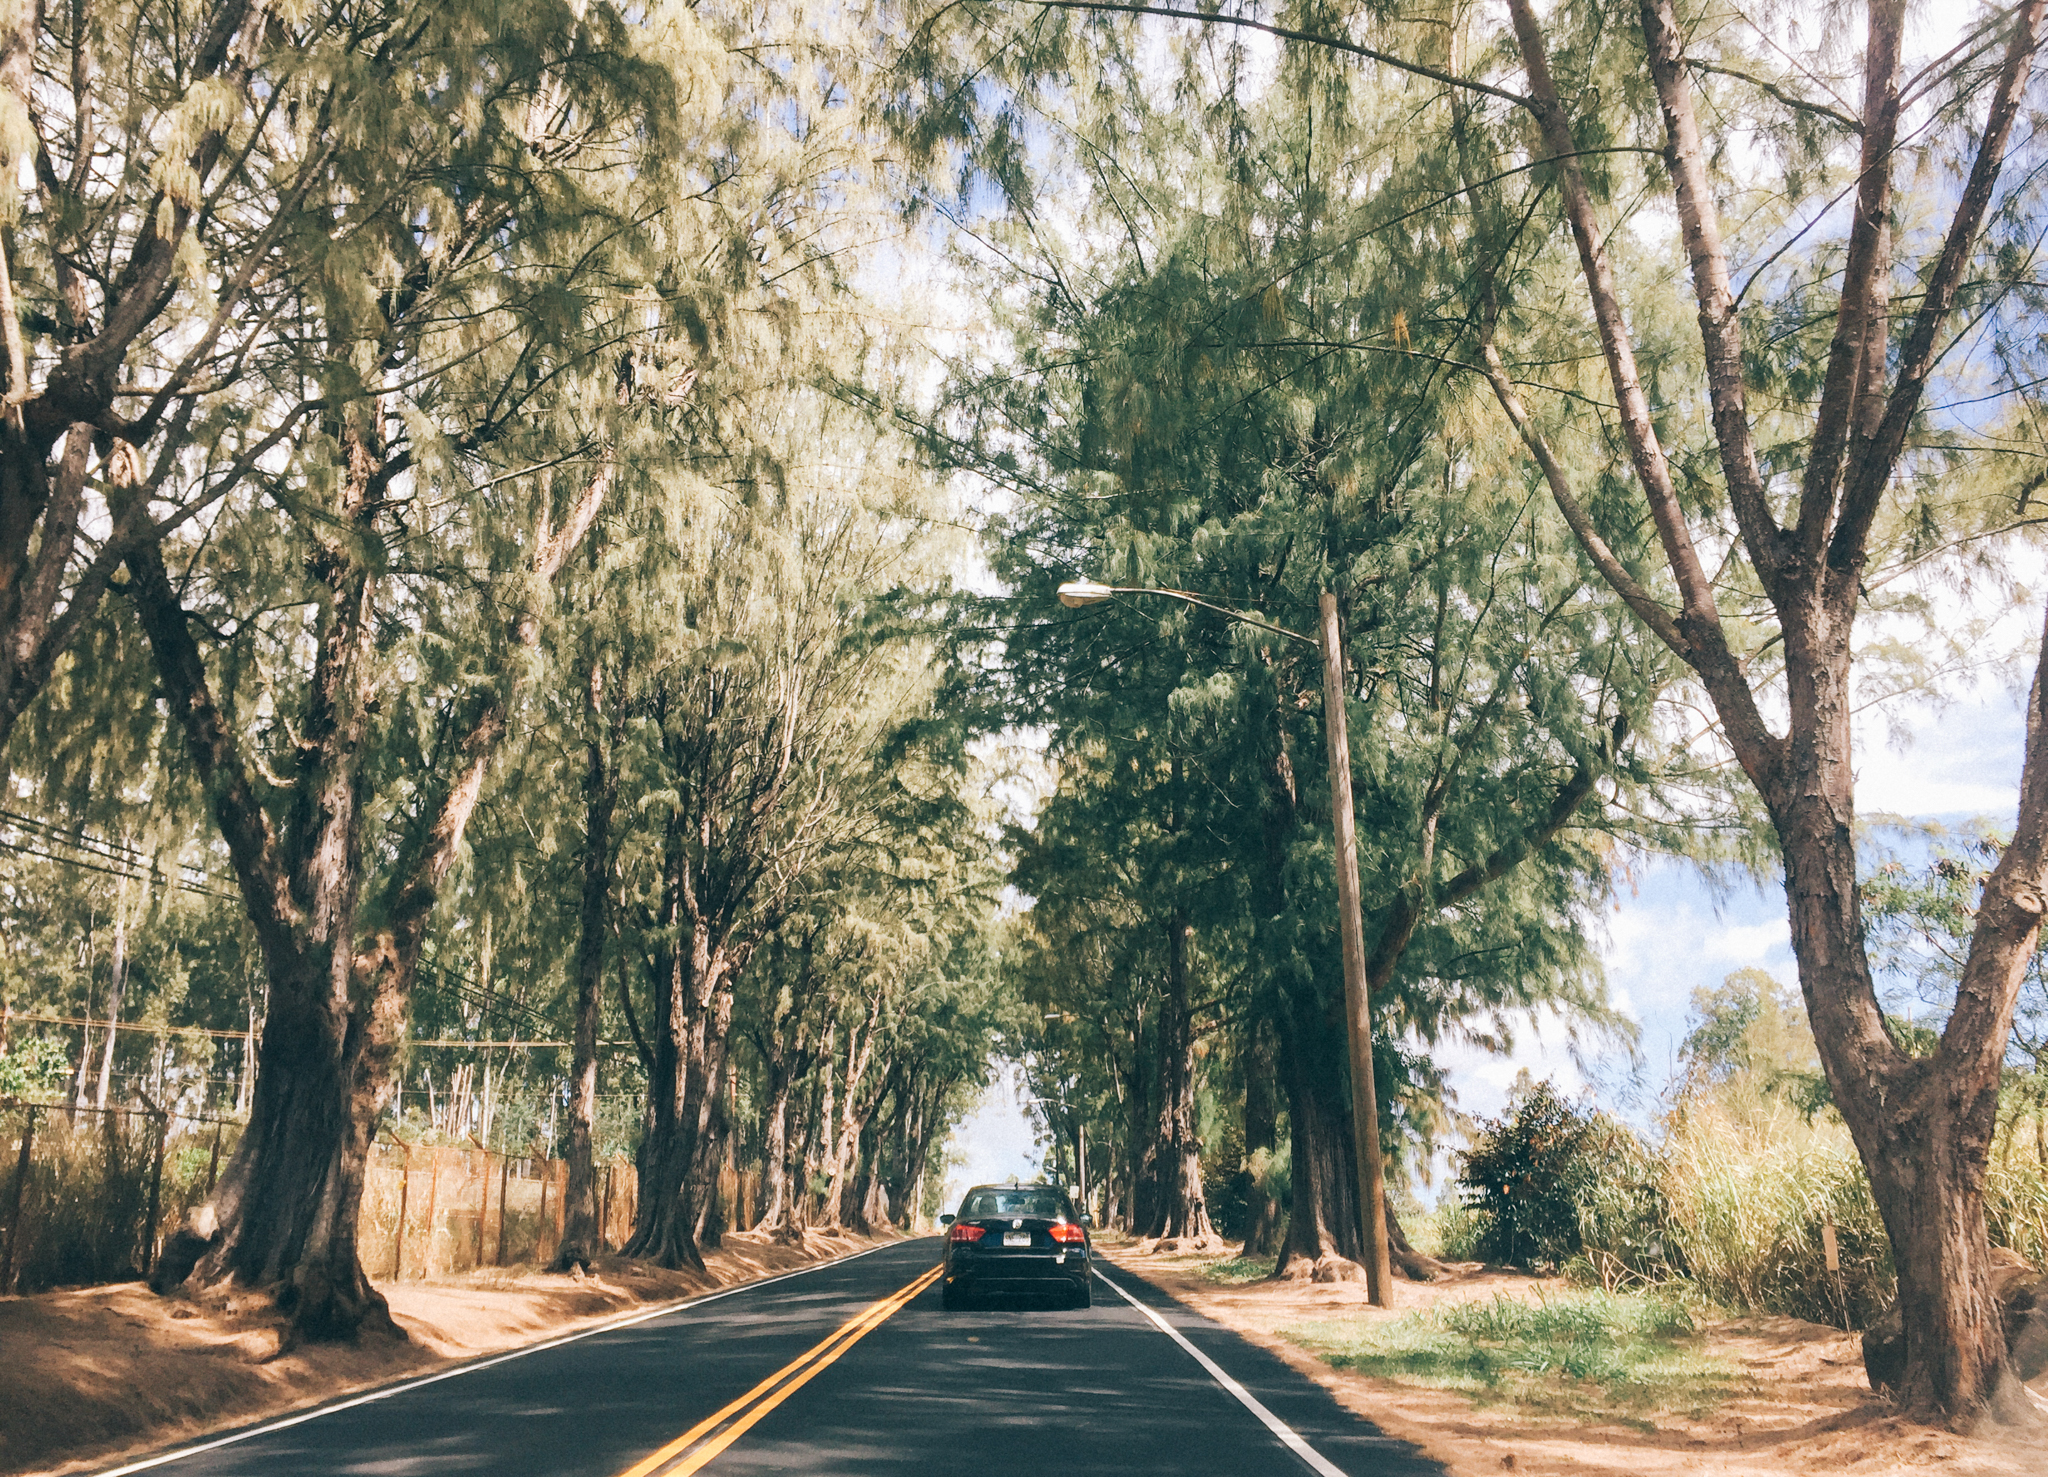 The drive north to Kuaokala on Farrington Highway is lined with trees, ranches, and pineapple farms.